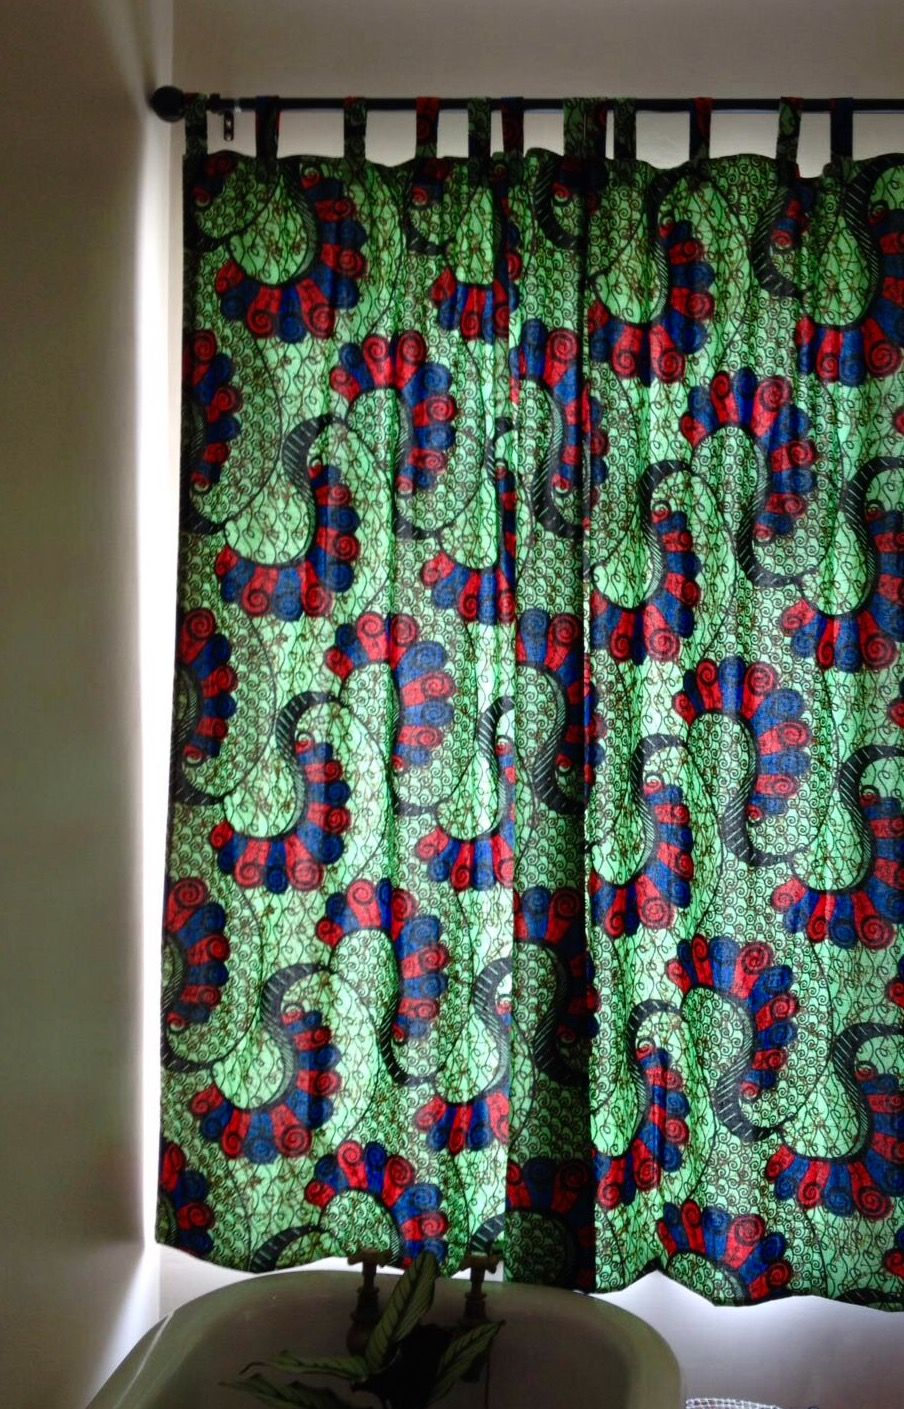 African Fabric Chitenge Bathroom Curtains African Inspired Decor African Home Decor Curtains